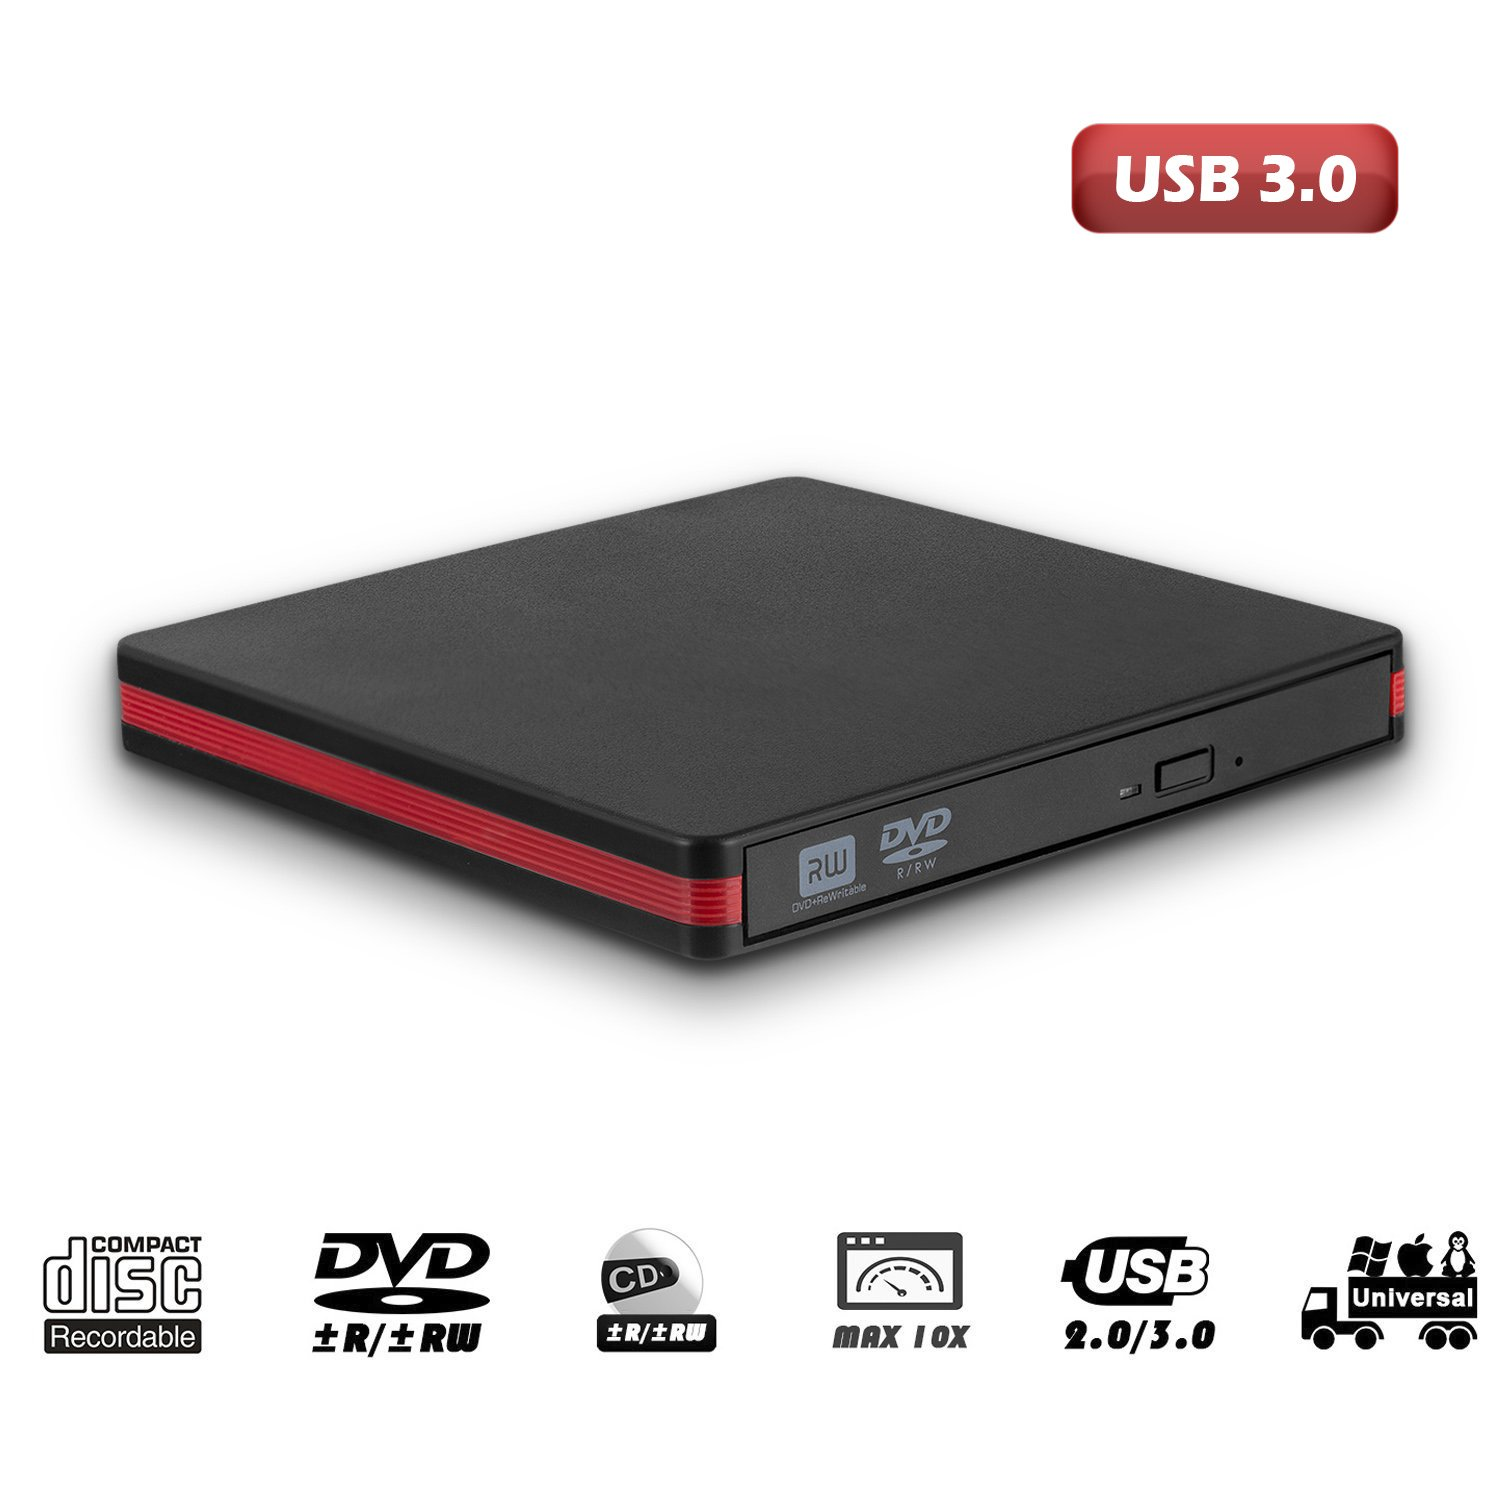 USB 3.0 External CD Drive, MiluoTech Protable CD DVD Drive High Speed Data Transfer DVD CD +/- RW Writer Burner Rewriter DVD/CD-ROM Drives for Laptop Desktops Windows Mac OSX